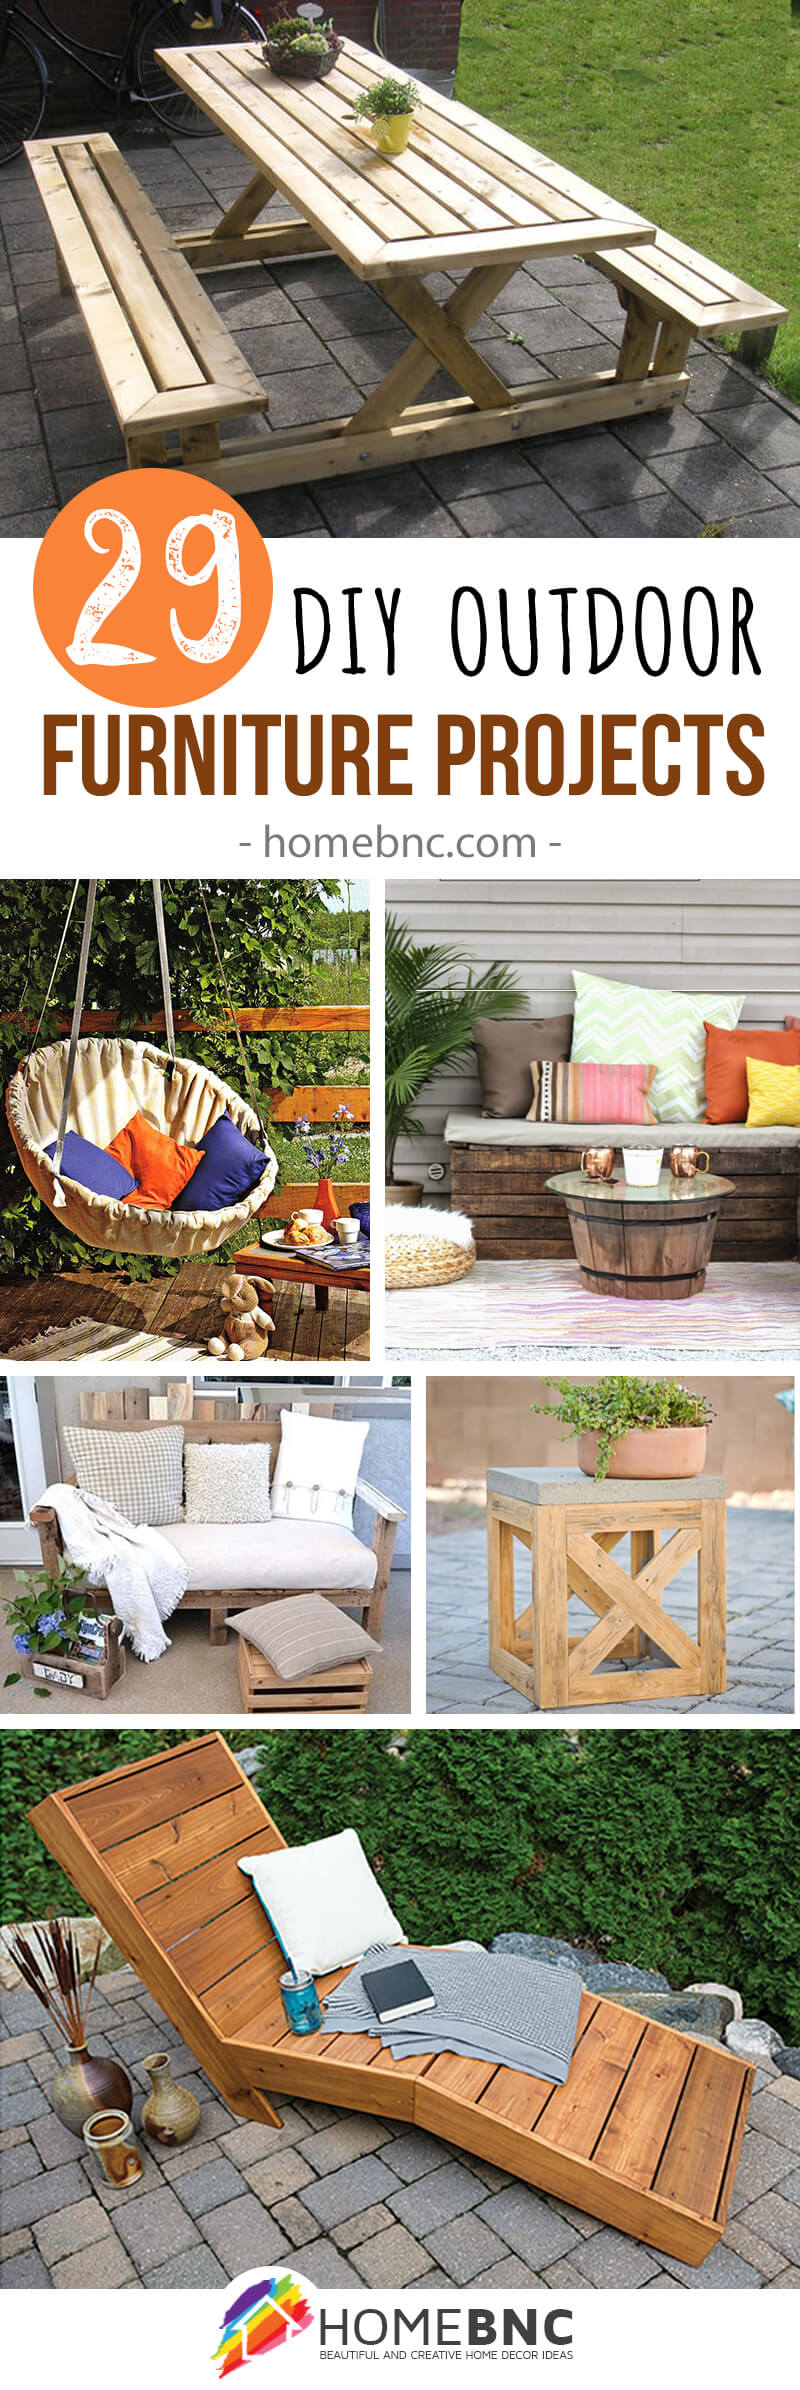 29 Repurposed Outdoor Furniture Projects To Spruce Up Your Space